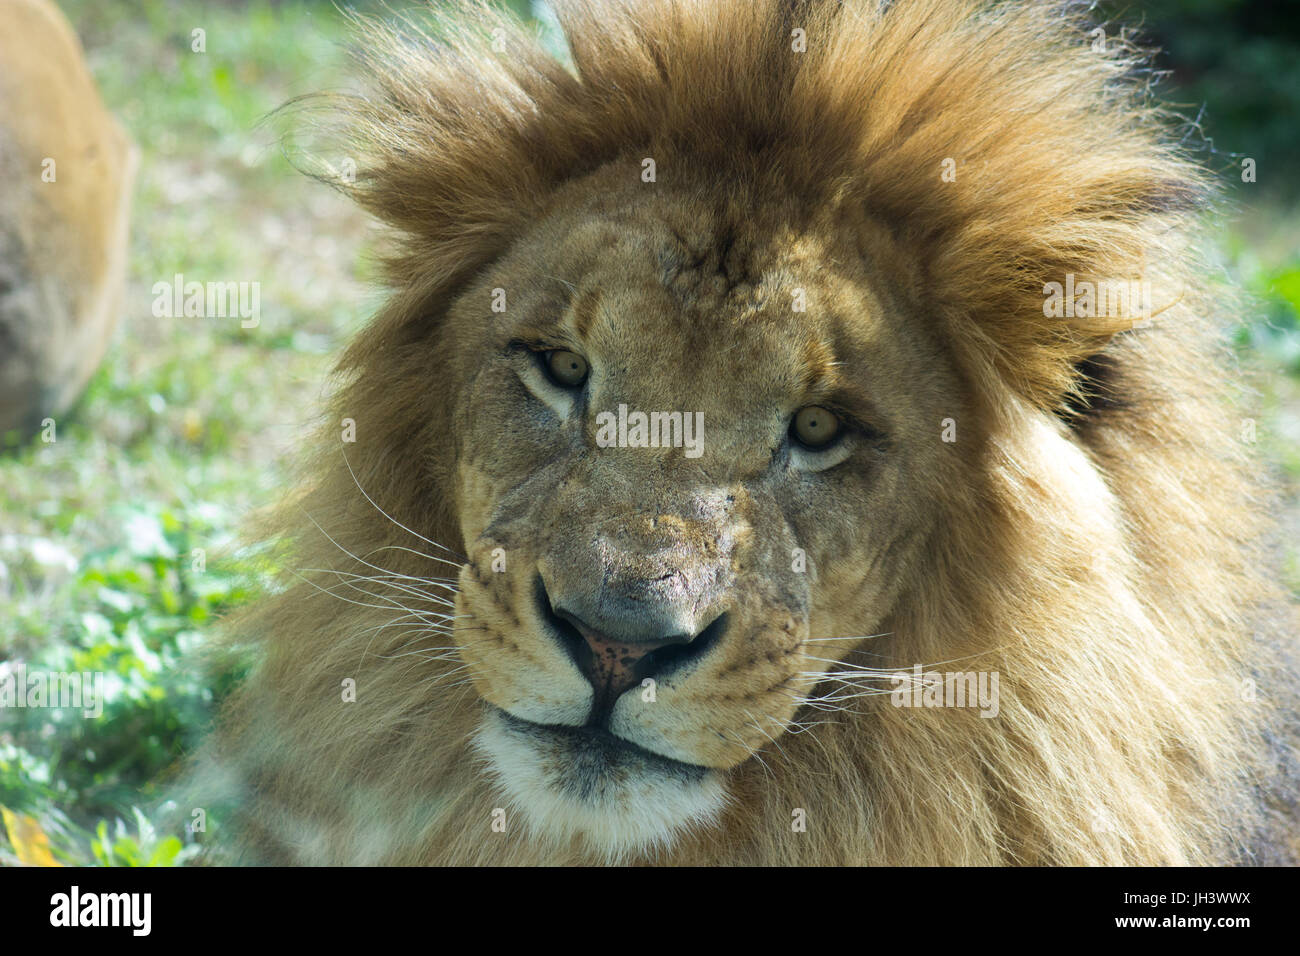 A lion snarls. - Stock Image